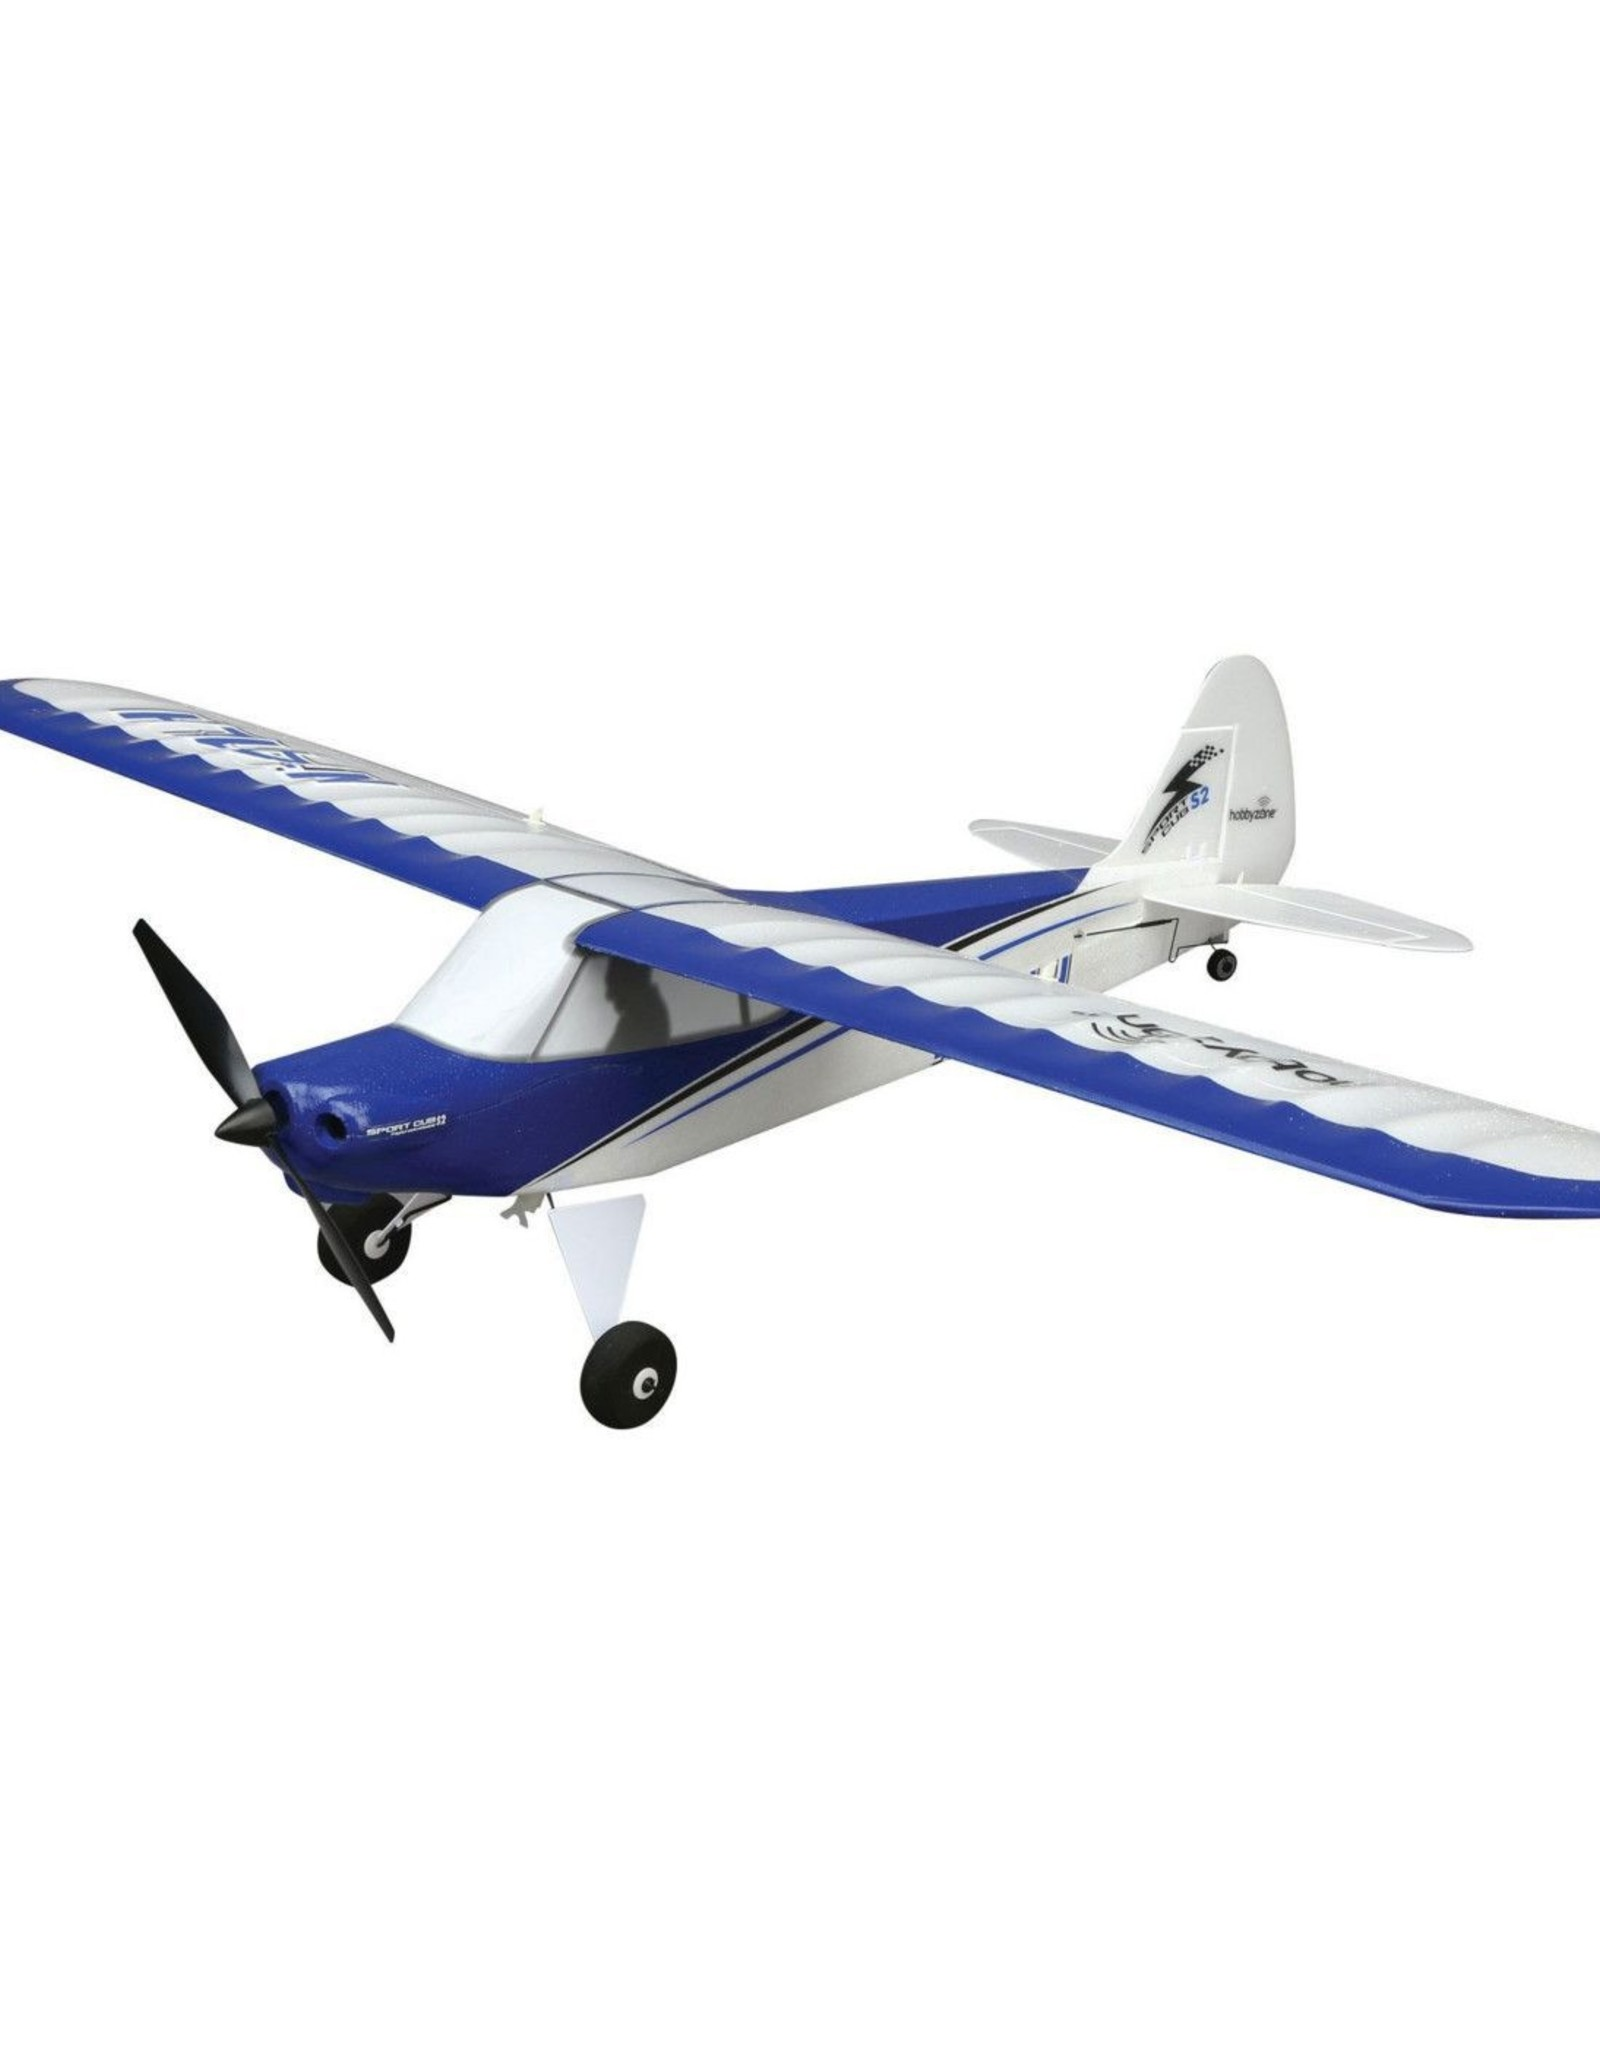 HobbyZone HobbyZone Sport Cub S BNF with SAFE, 616mm